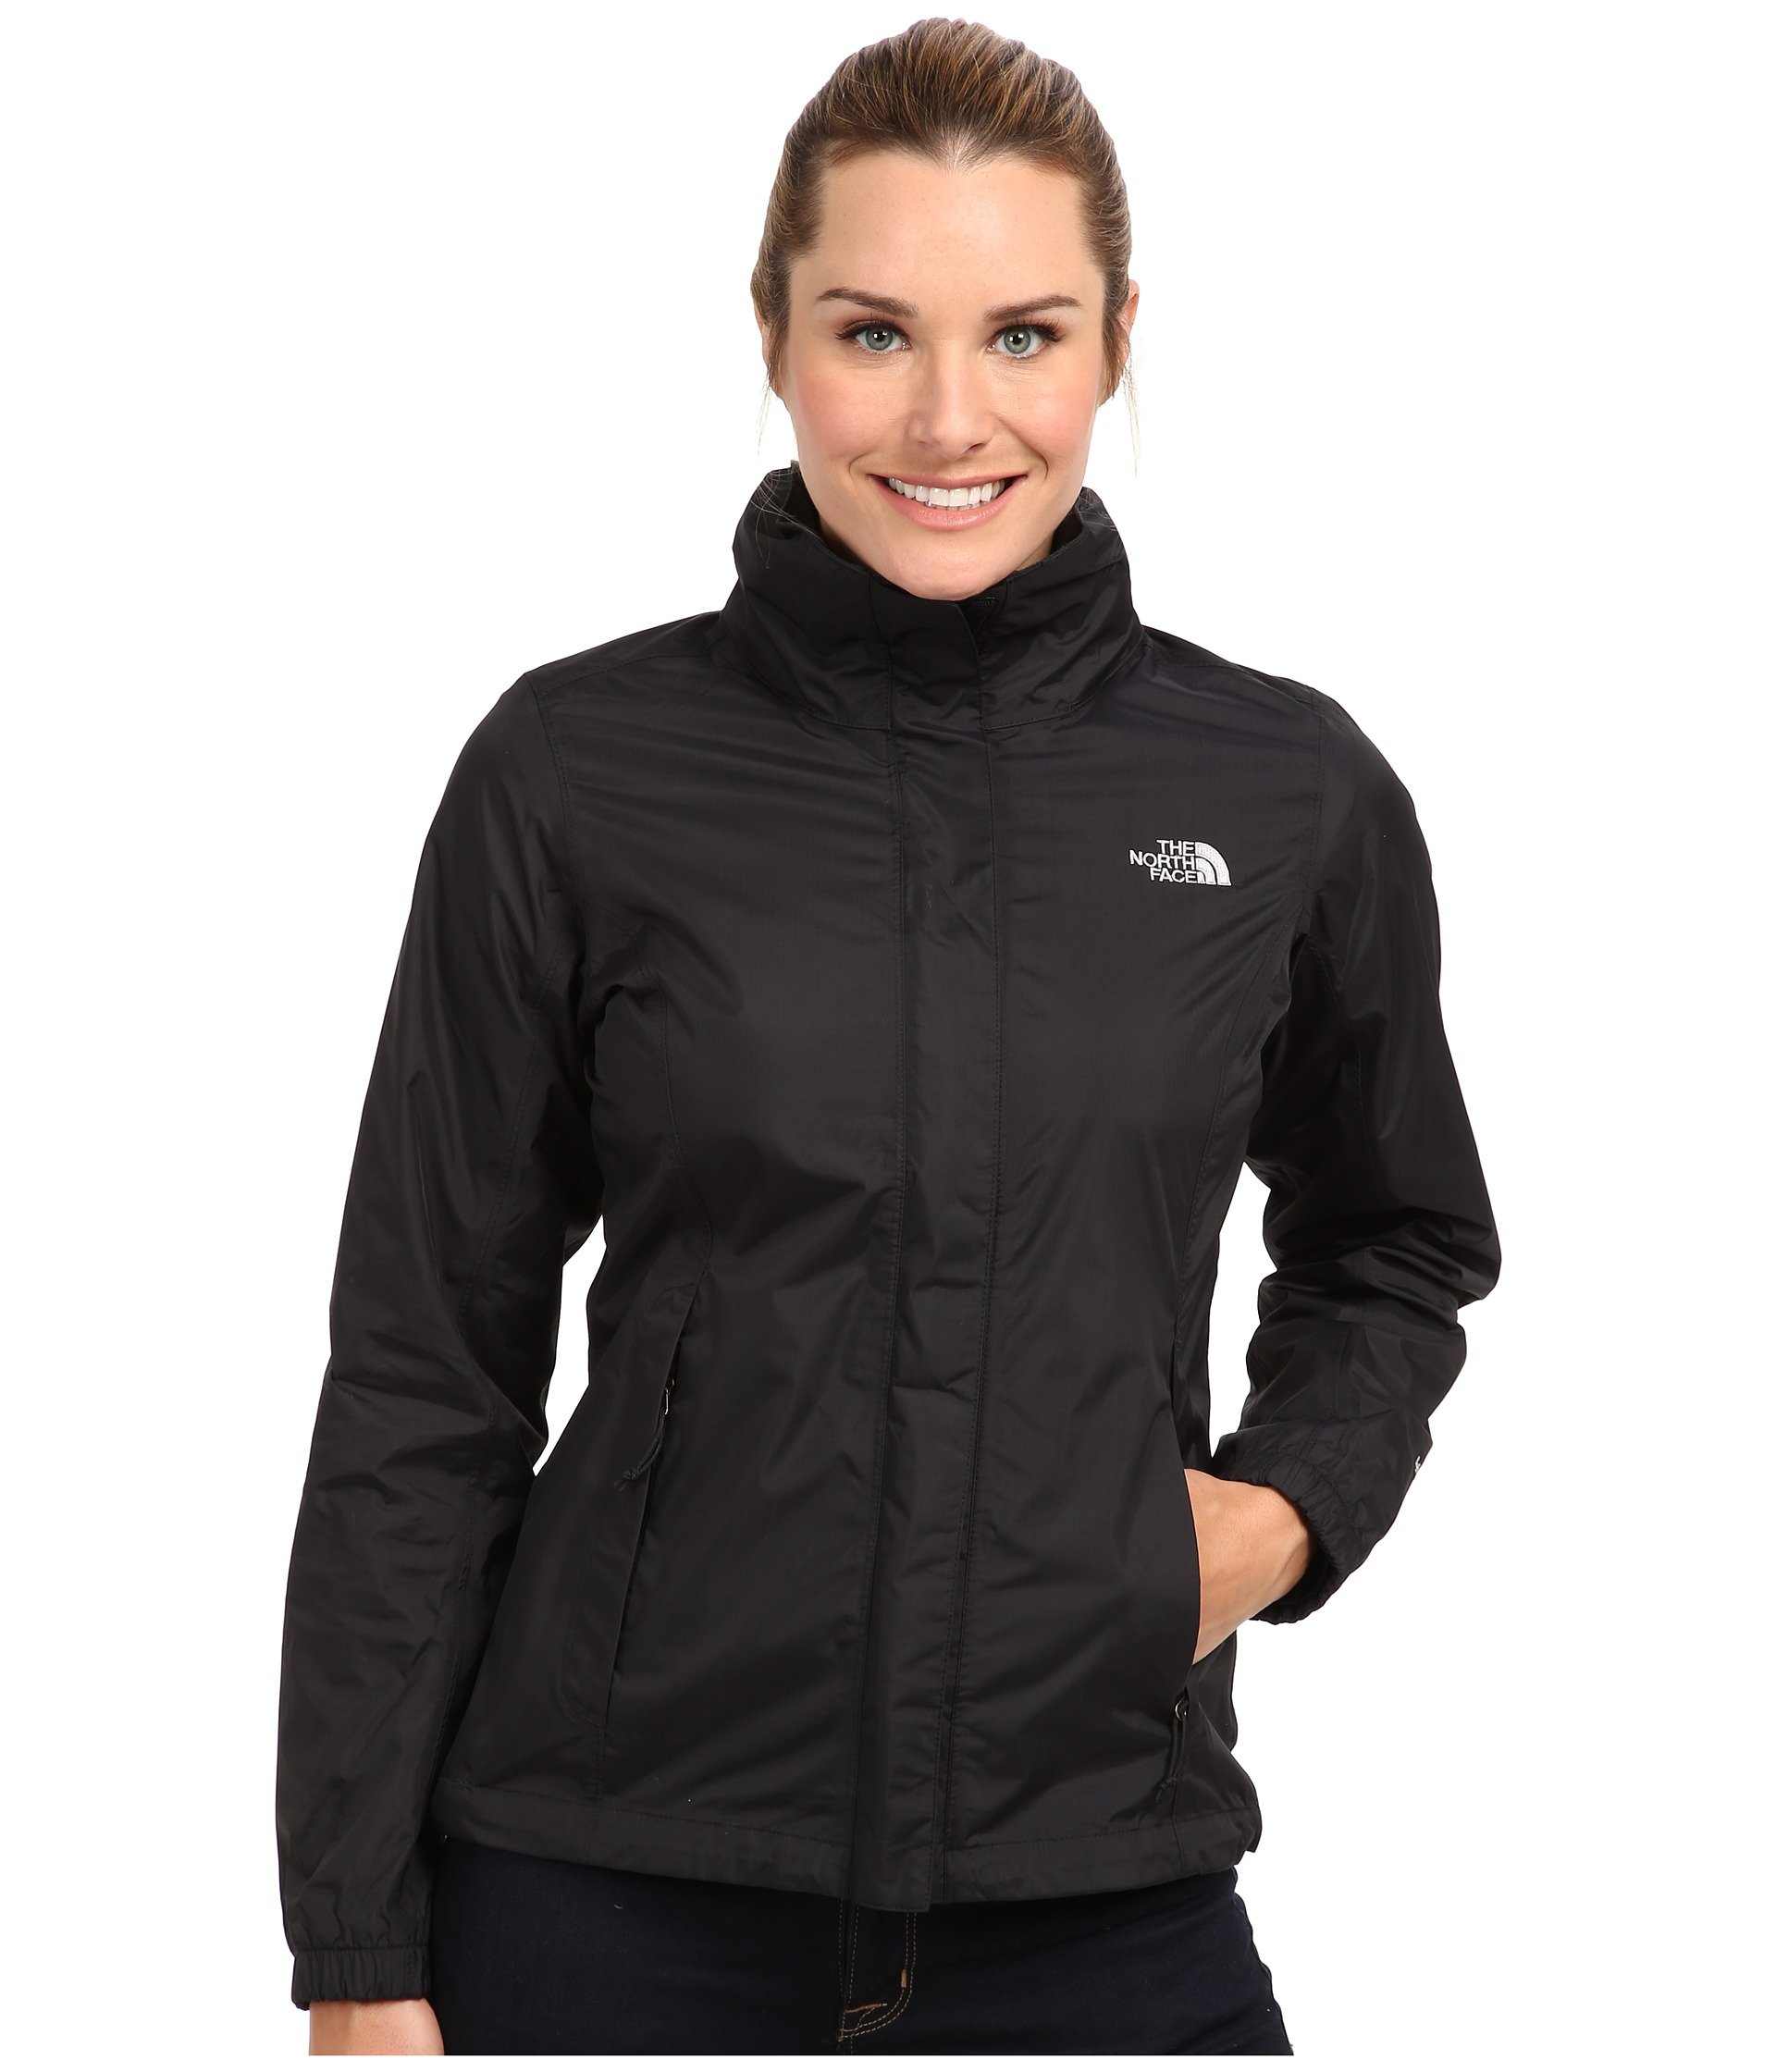 North face jackets for womens